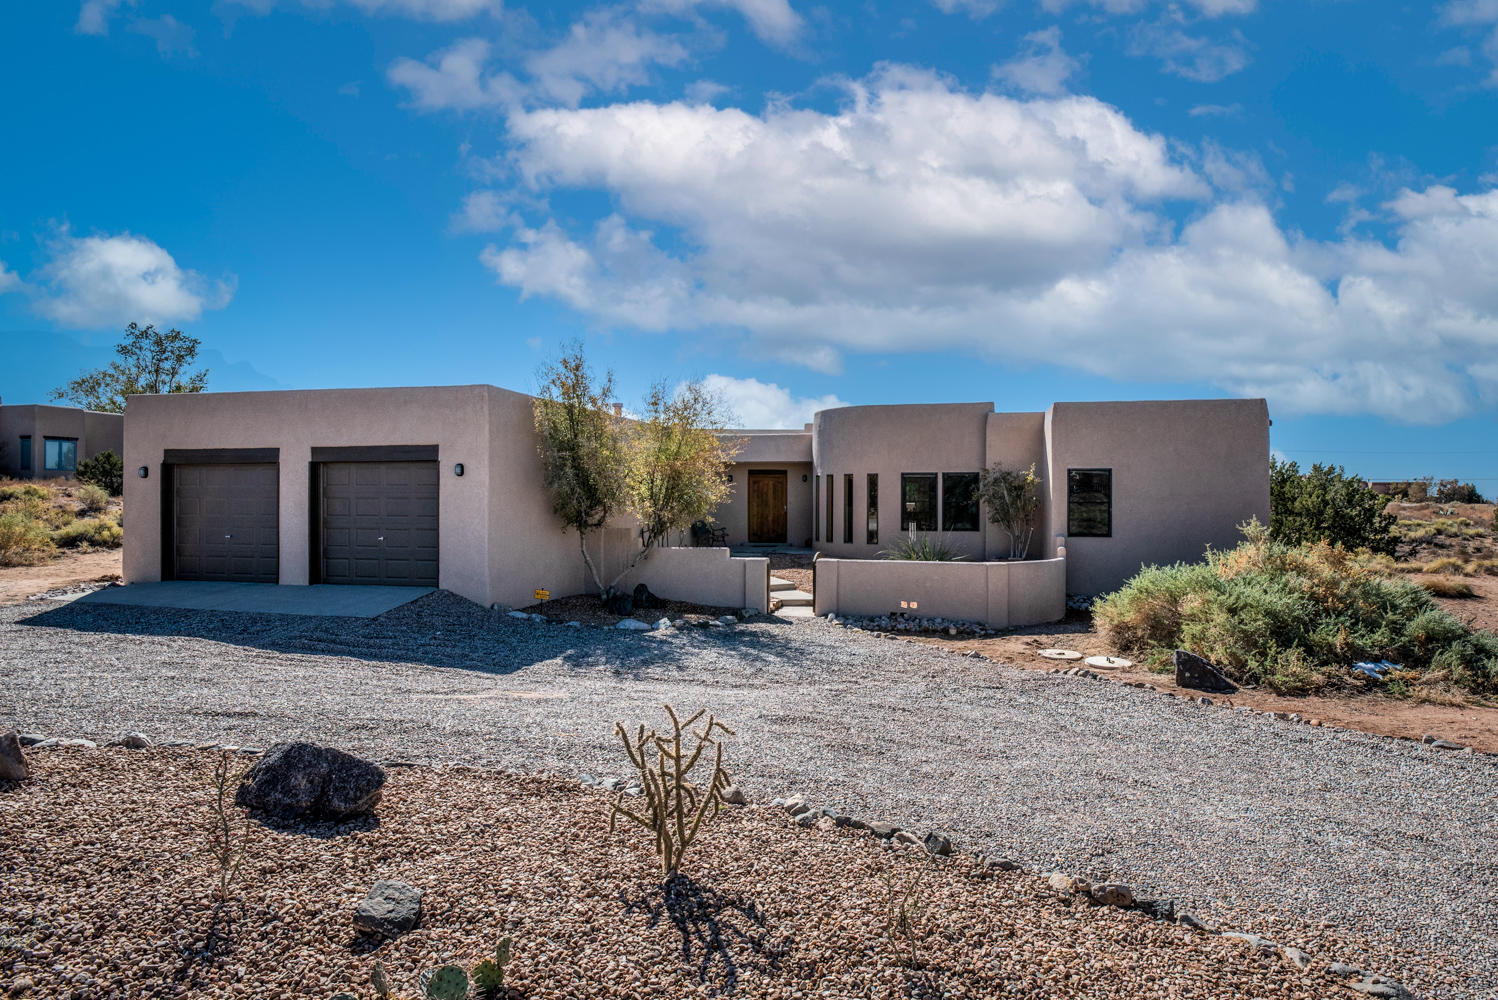 Single level custom southwest style home on 1.29 acre lot in Placitas. The beauty and open space of Placitas in a convenient location just over one mile from I-25 with easy access to both Albuquerque & Santa Fe. High ceilings & abundant light throughout. Well laid out for entertaining both summer and winter. Custom kitchen w/pecan cabinetry, double oven, gas cooktop, island and informal dining area. Kitchen, formal dining room and master bedroom all access backyard and patio with ever-changing views of the Sandia mountains.  Spacious rooms; thoughtful floorplan with master suite, including attached office/nursery, separated from the two ensuite bedrooms. Comfort assured with in-floor radiant heat, two newer (2 years) refrigerated air units,and 2 fireplaces. New roof, stucco, carpet.